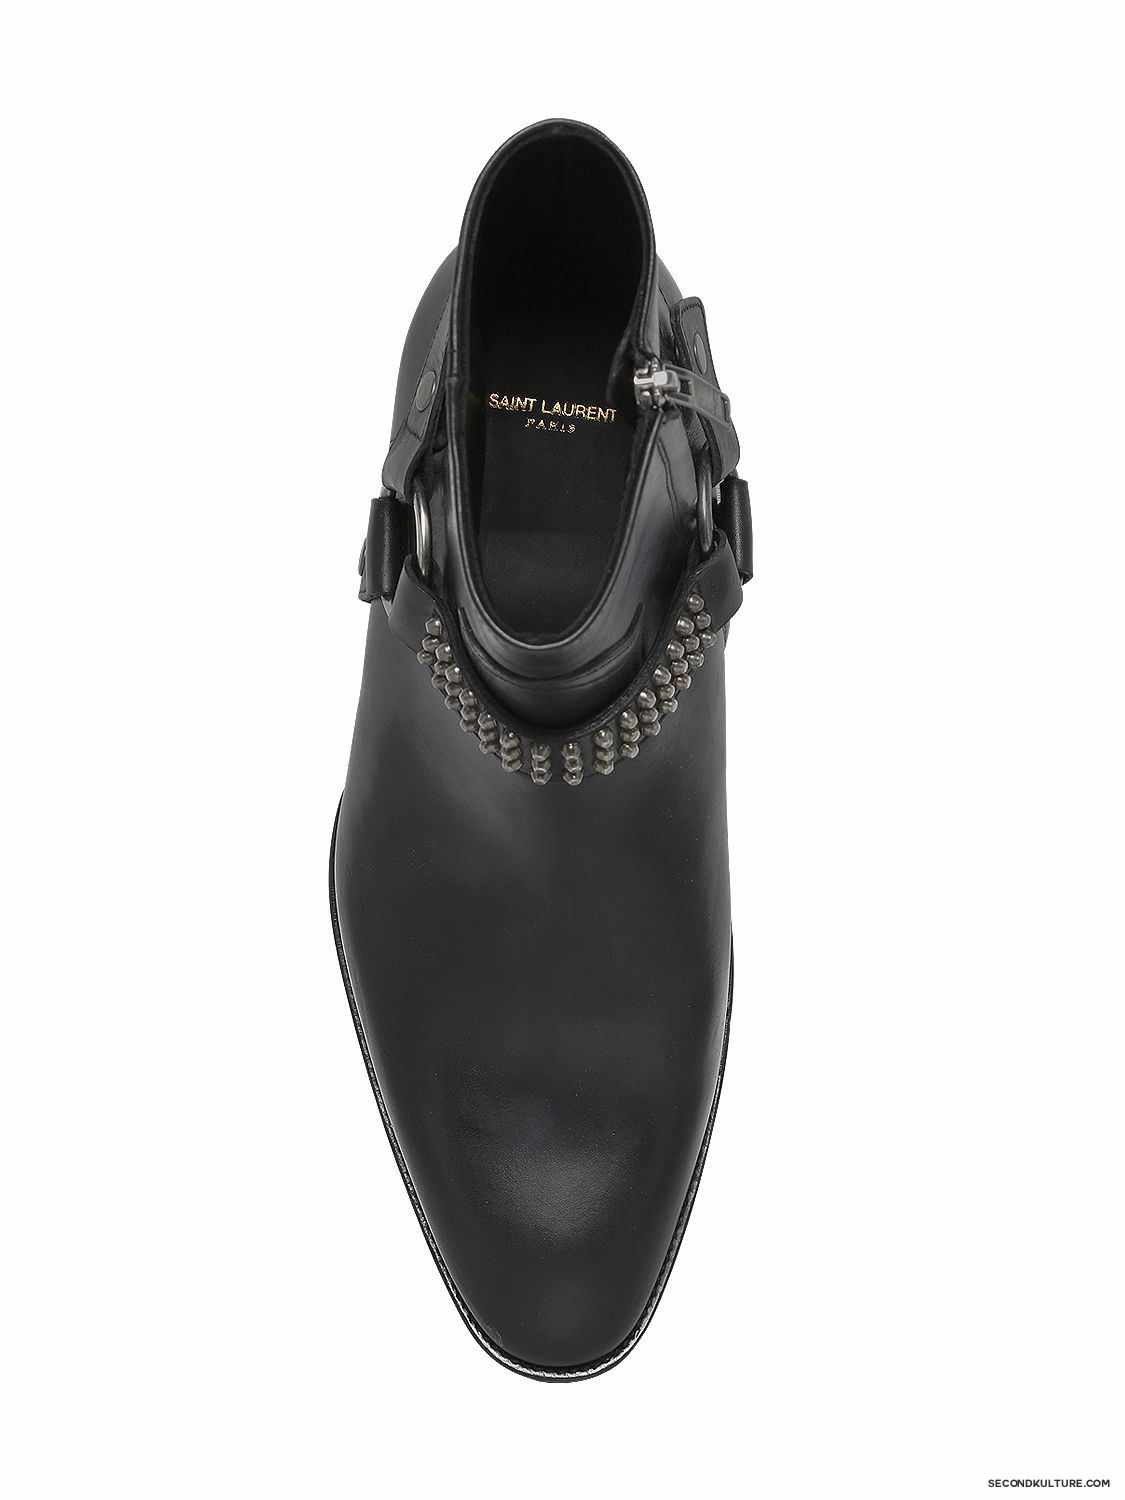 Saint-Laurent-40mm-Black-Wyatt-Studded-Harness-Leather-Ankle-Boots-Fall-Winter-2015-2